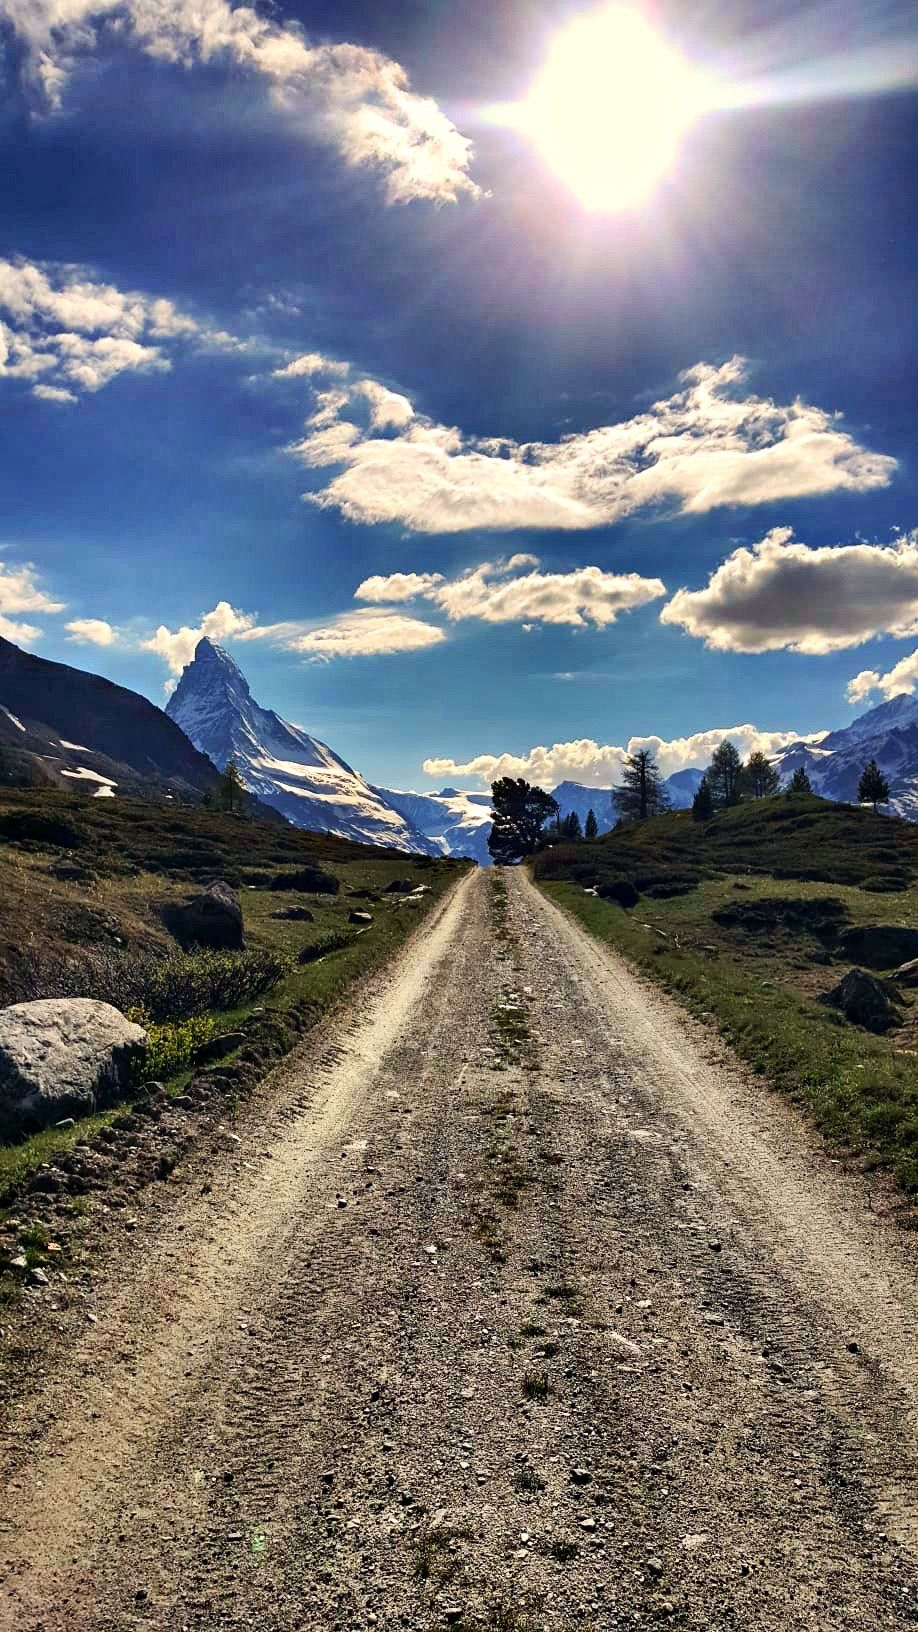 Mountain Biking in Zermatt - Matterhorn: Kickbike Sunnegga: Kickbike, that's the thrilling ride from Sunnegga down to the village of Zermatt. The wind in your hair, spectacular scenery: this is outdoor adventure at its best. #zermatt #matterhorn #switzerland #biking #naturallandmarks